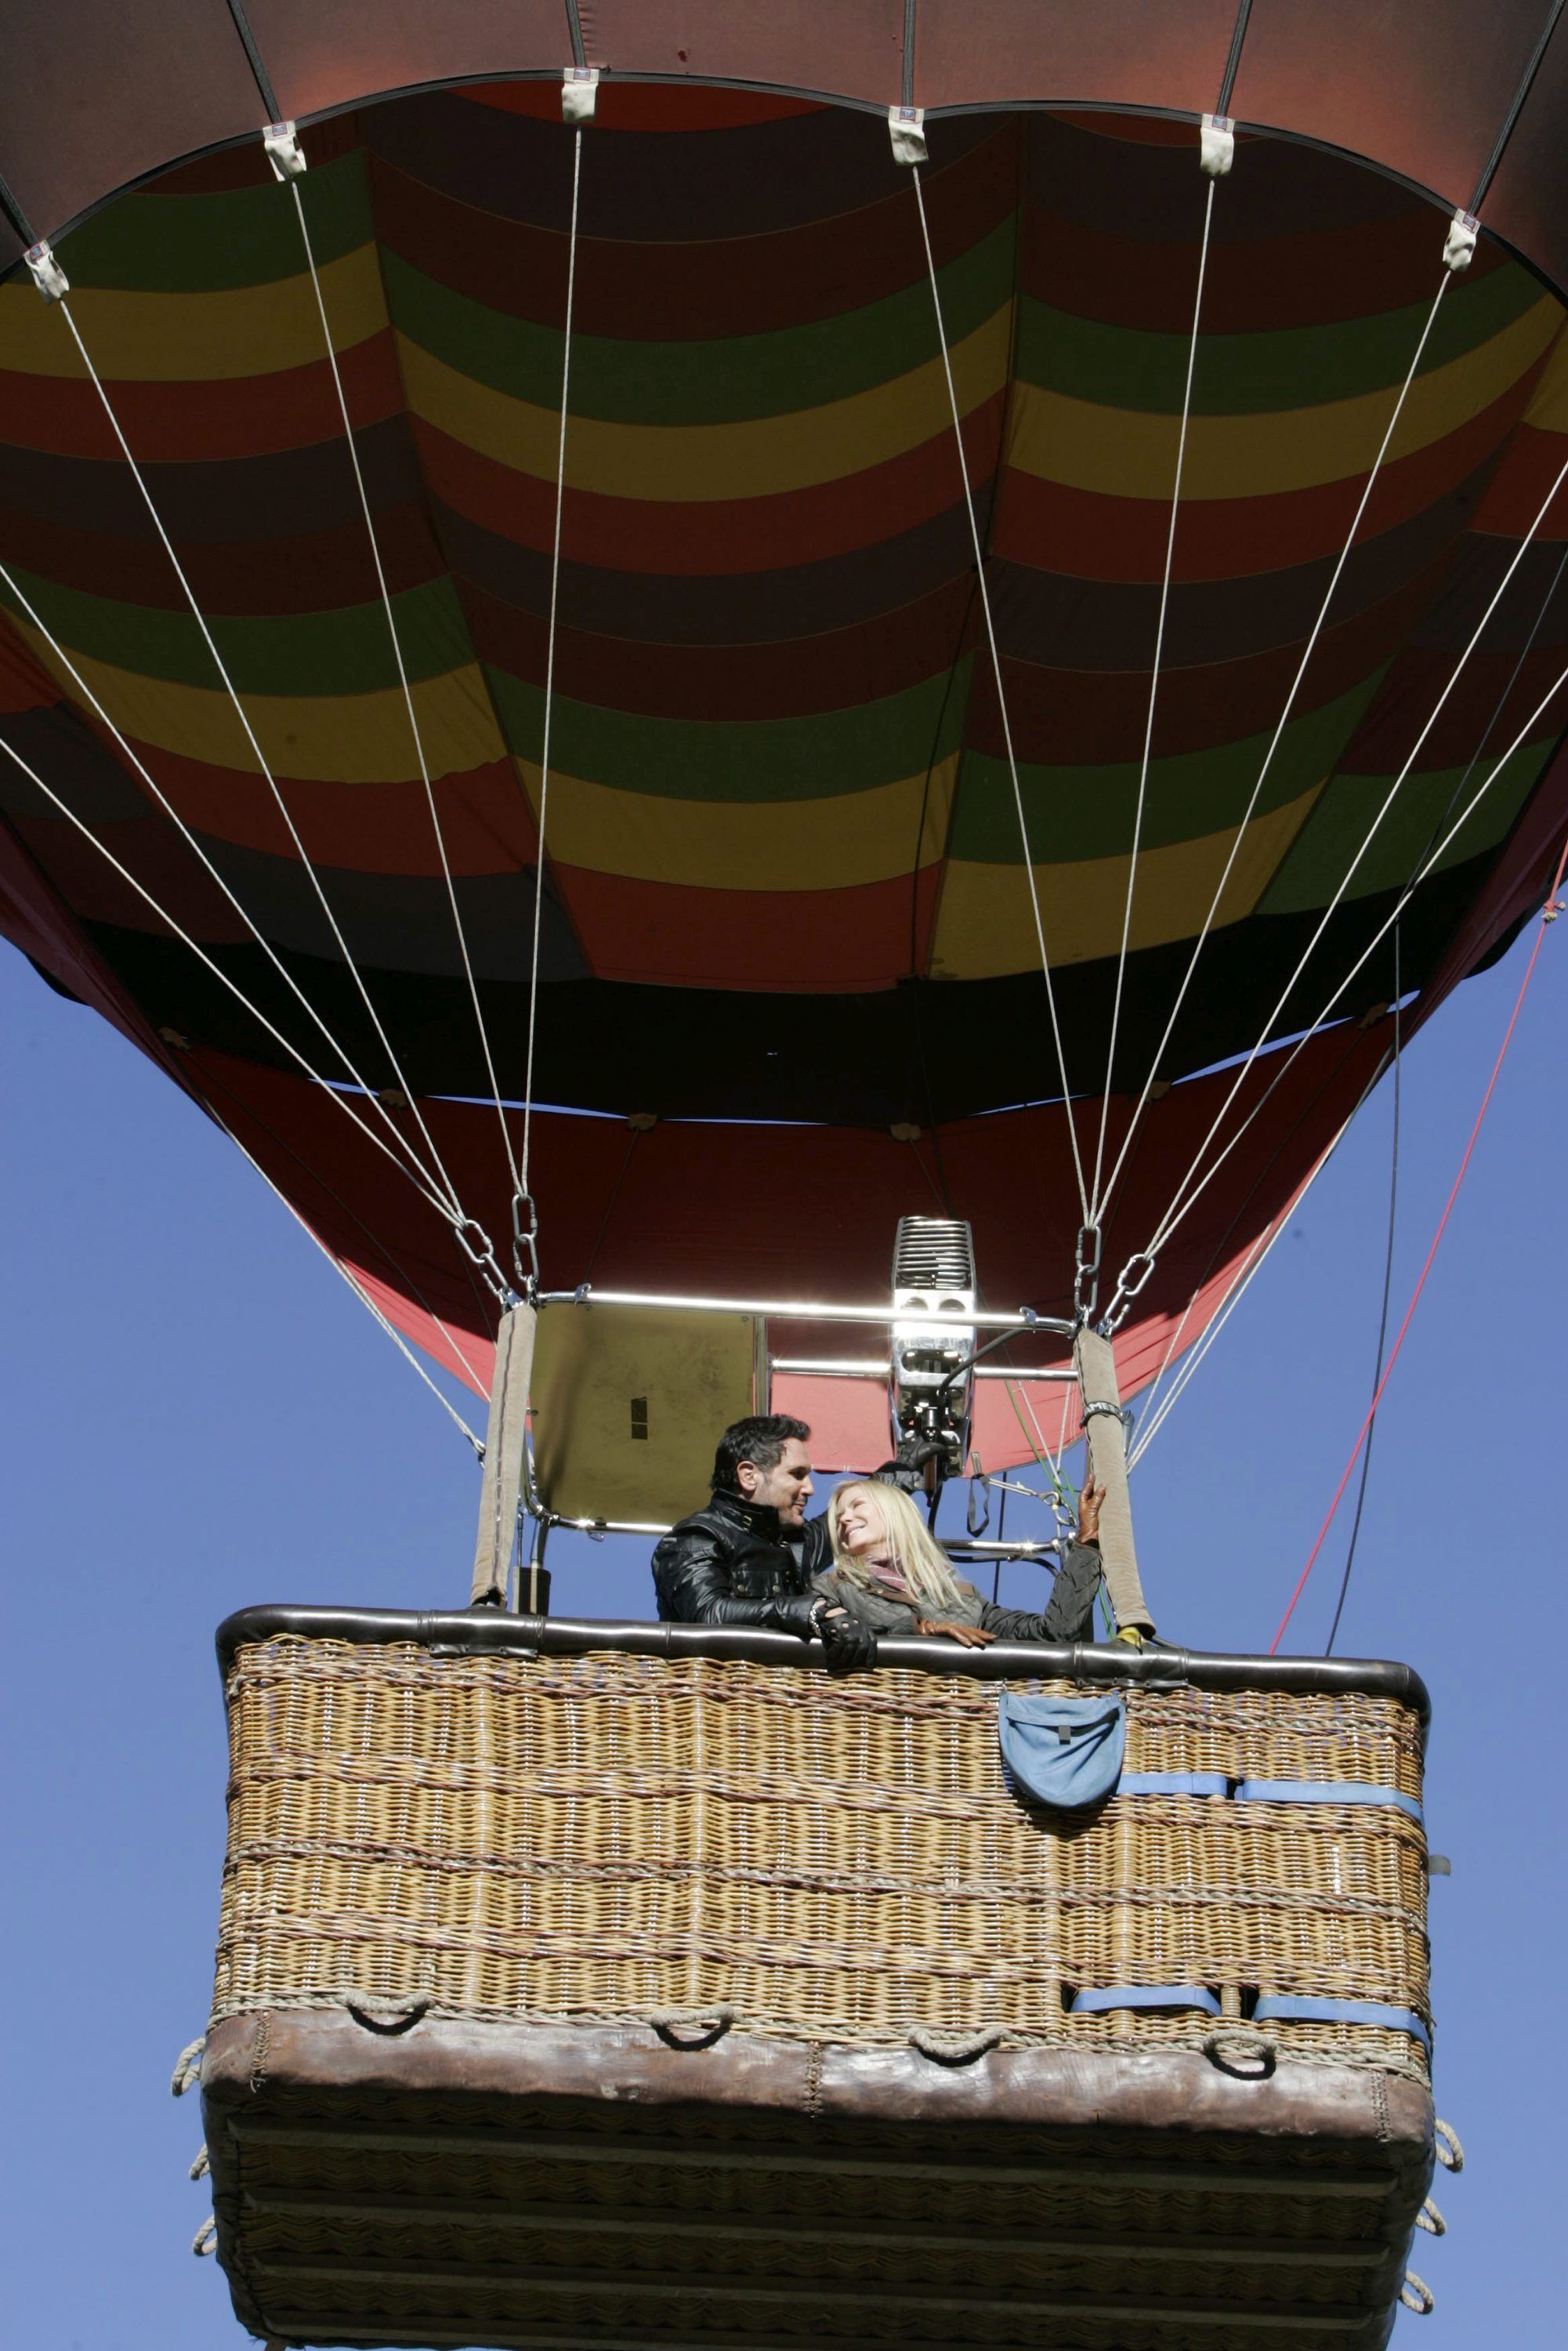 Bill and Brooke's Balloon Ride